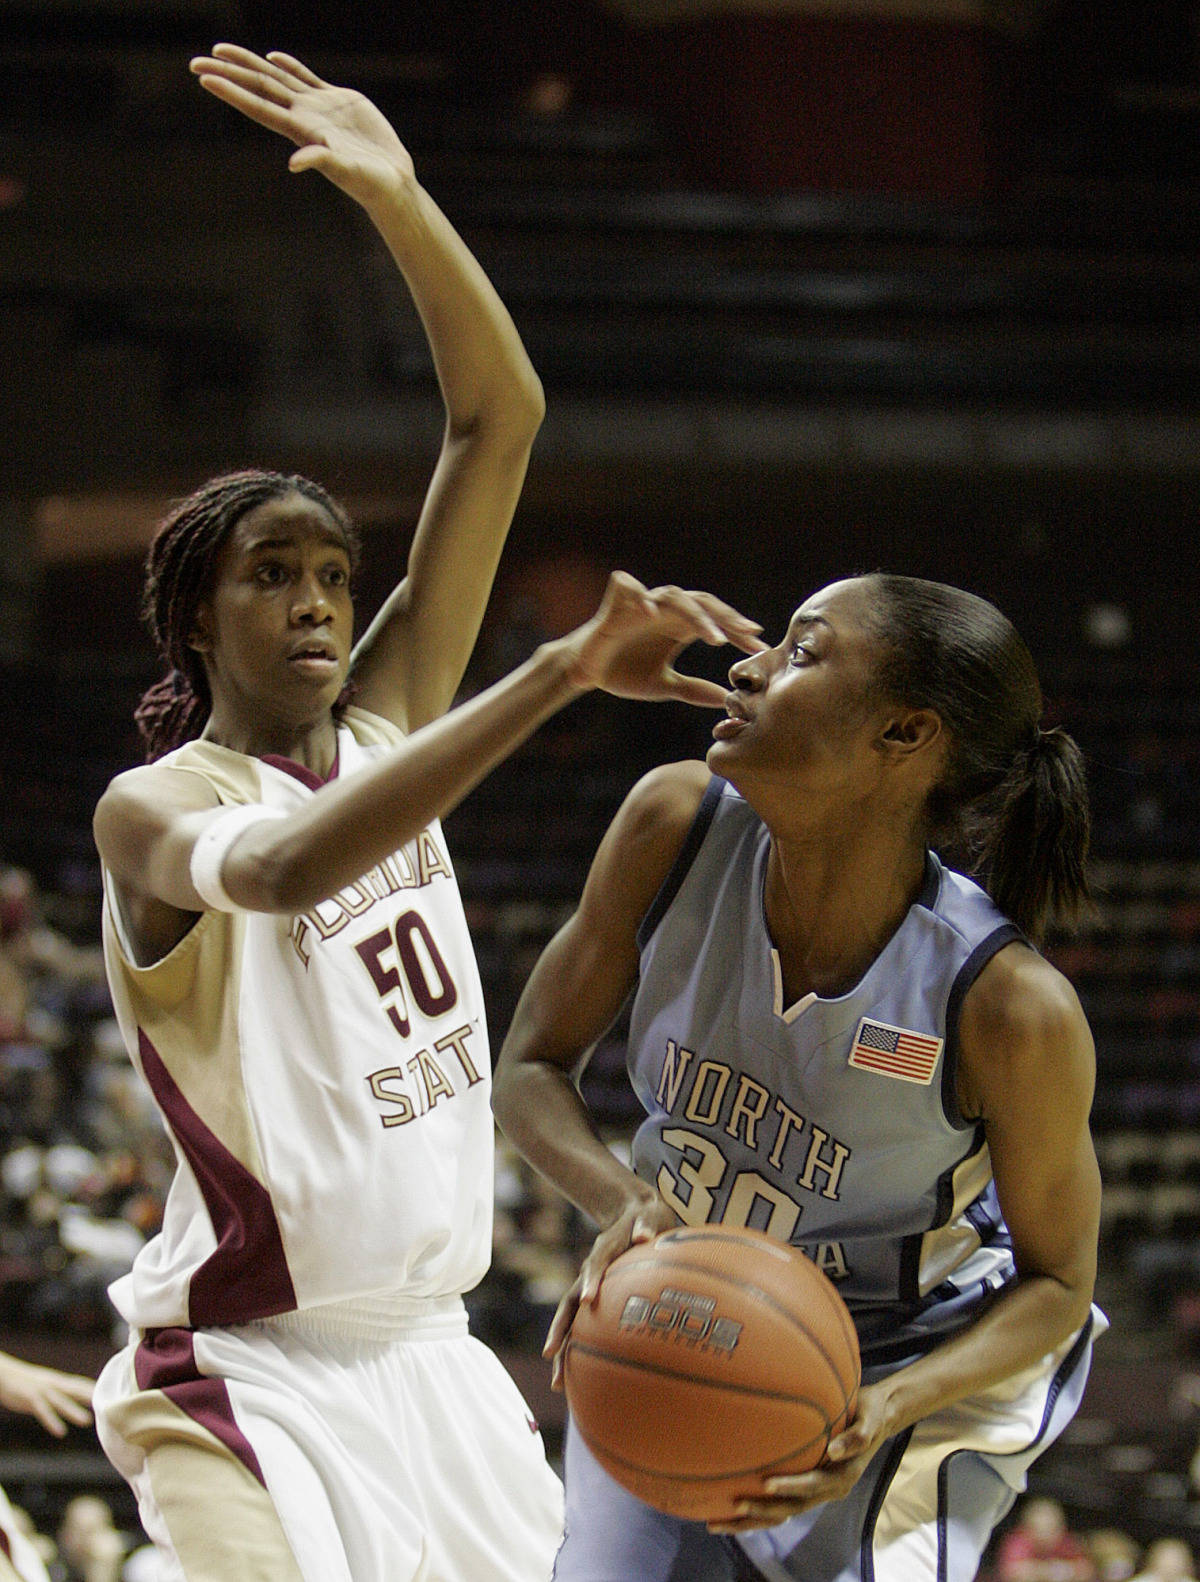 North Carolina's Latoya Pringle (30) tries to get around the defense of Florida State's Jacinta Monroe (50) in a college basketball game on Monday, Feb. 12, 2007 in Tallahassee, Fla. (AP Photo/Steve Cannon)